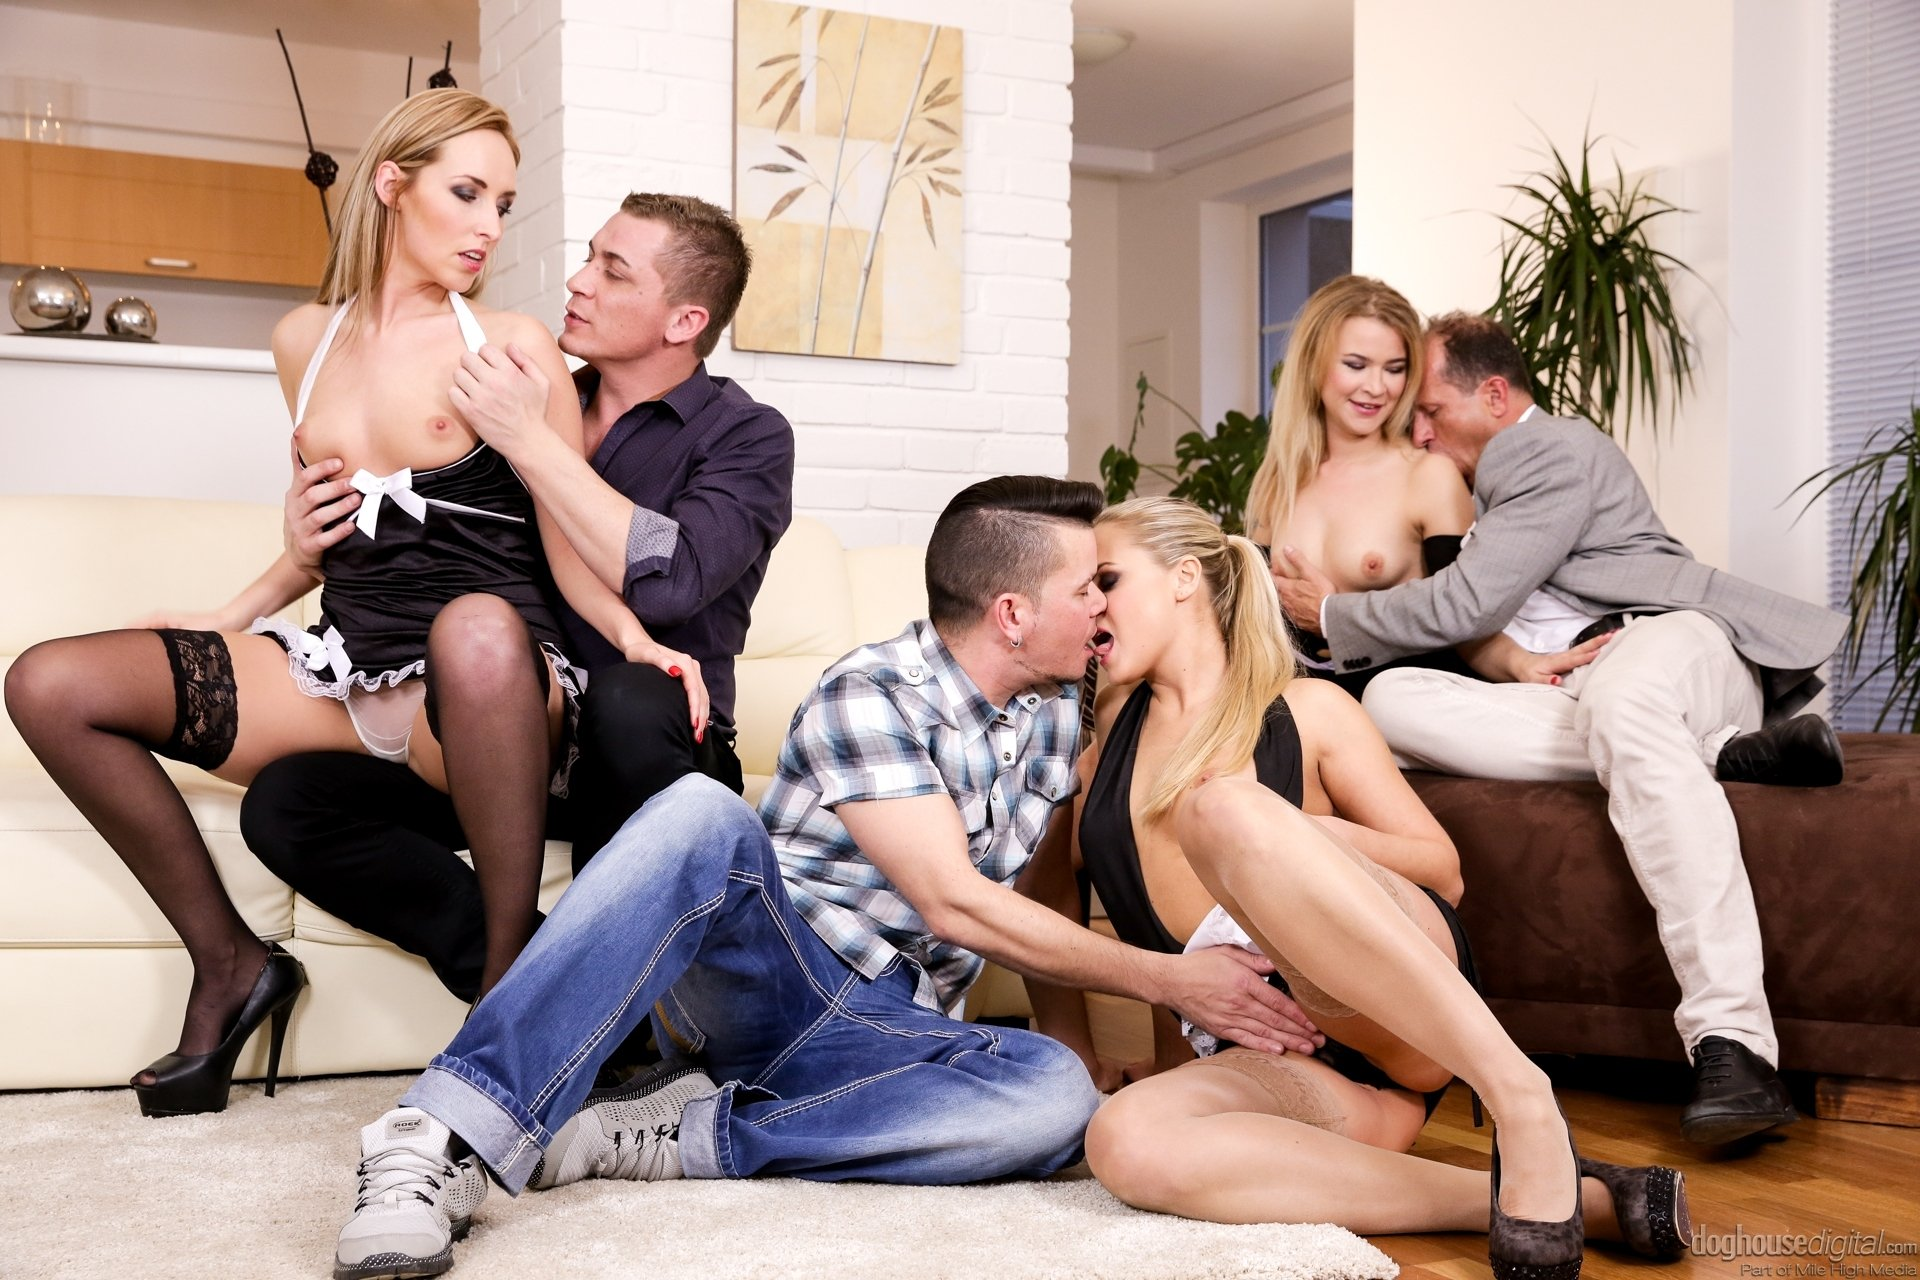 group sex party pictures